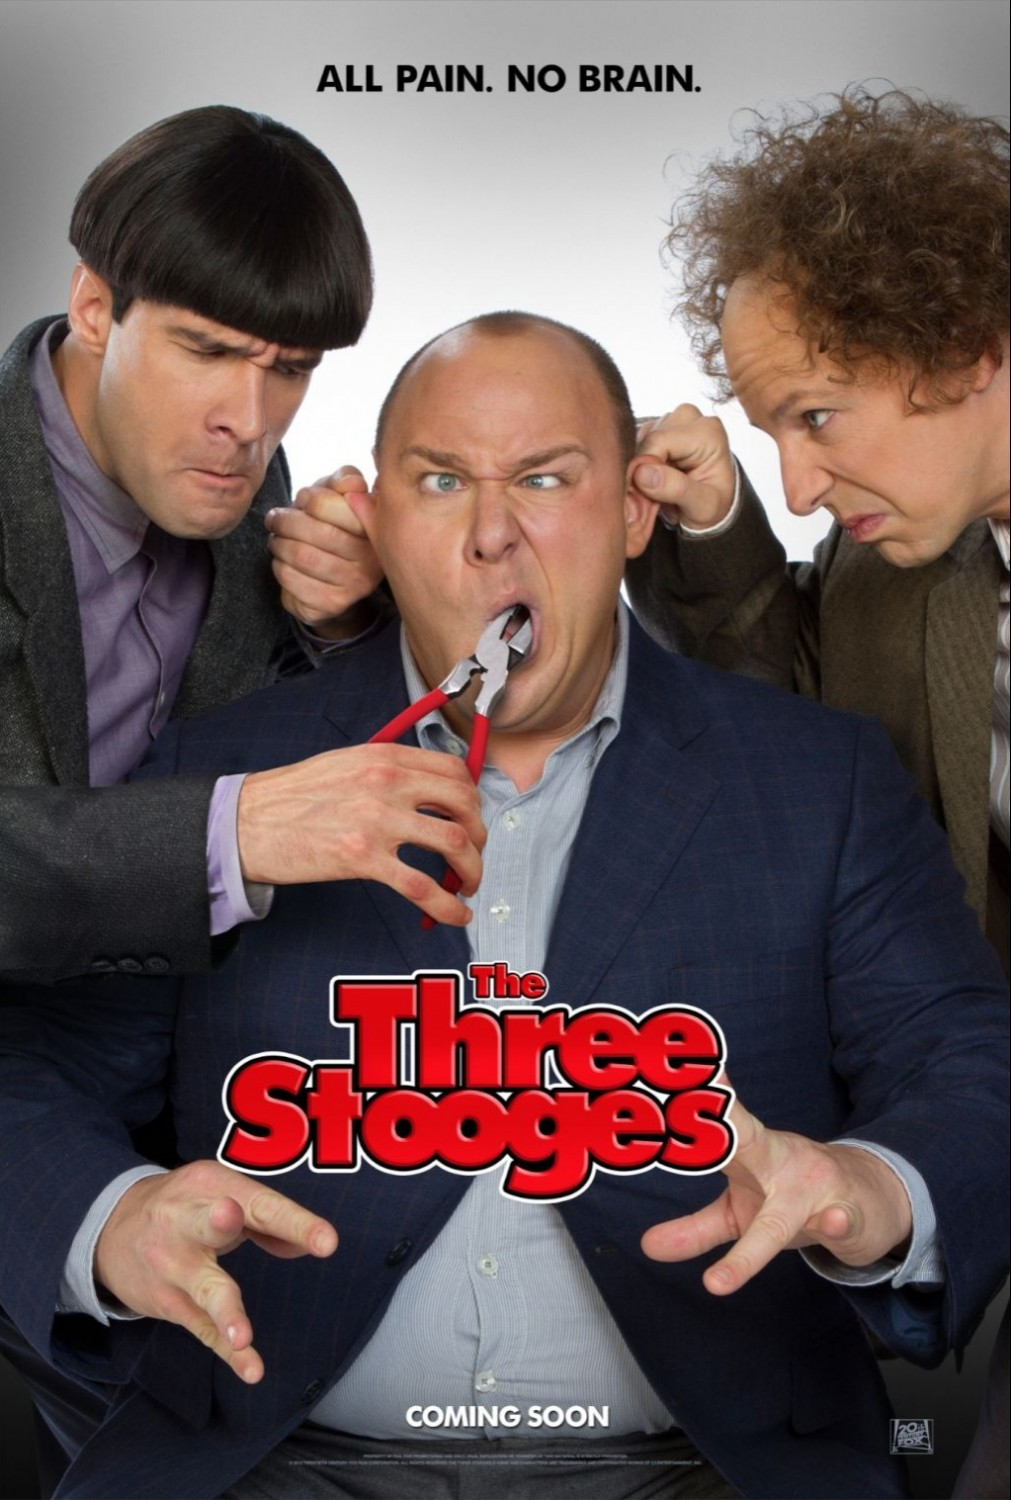 Ba Chng Ng - The Three Stooges (2012)